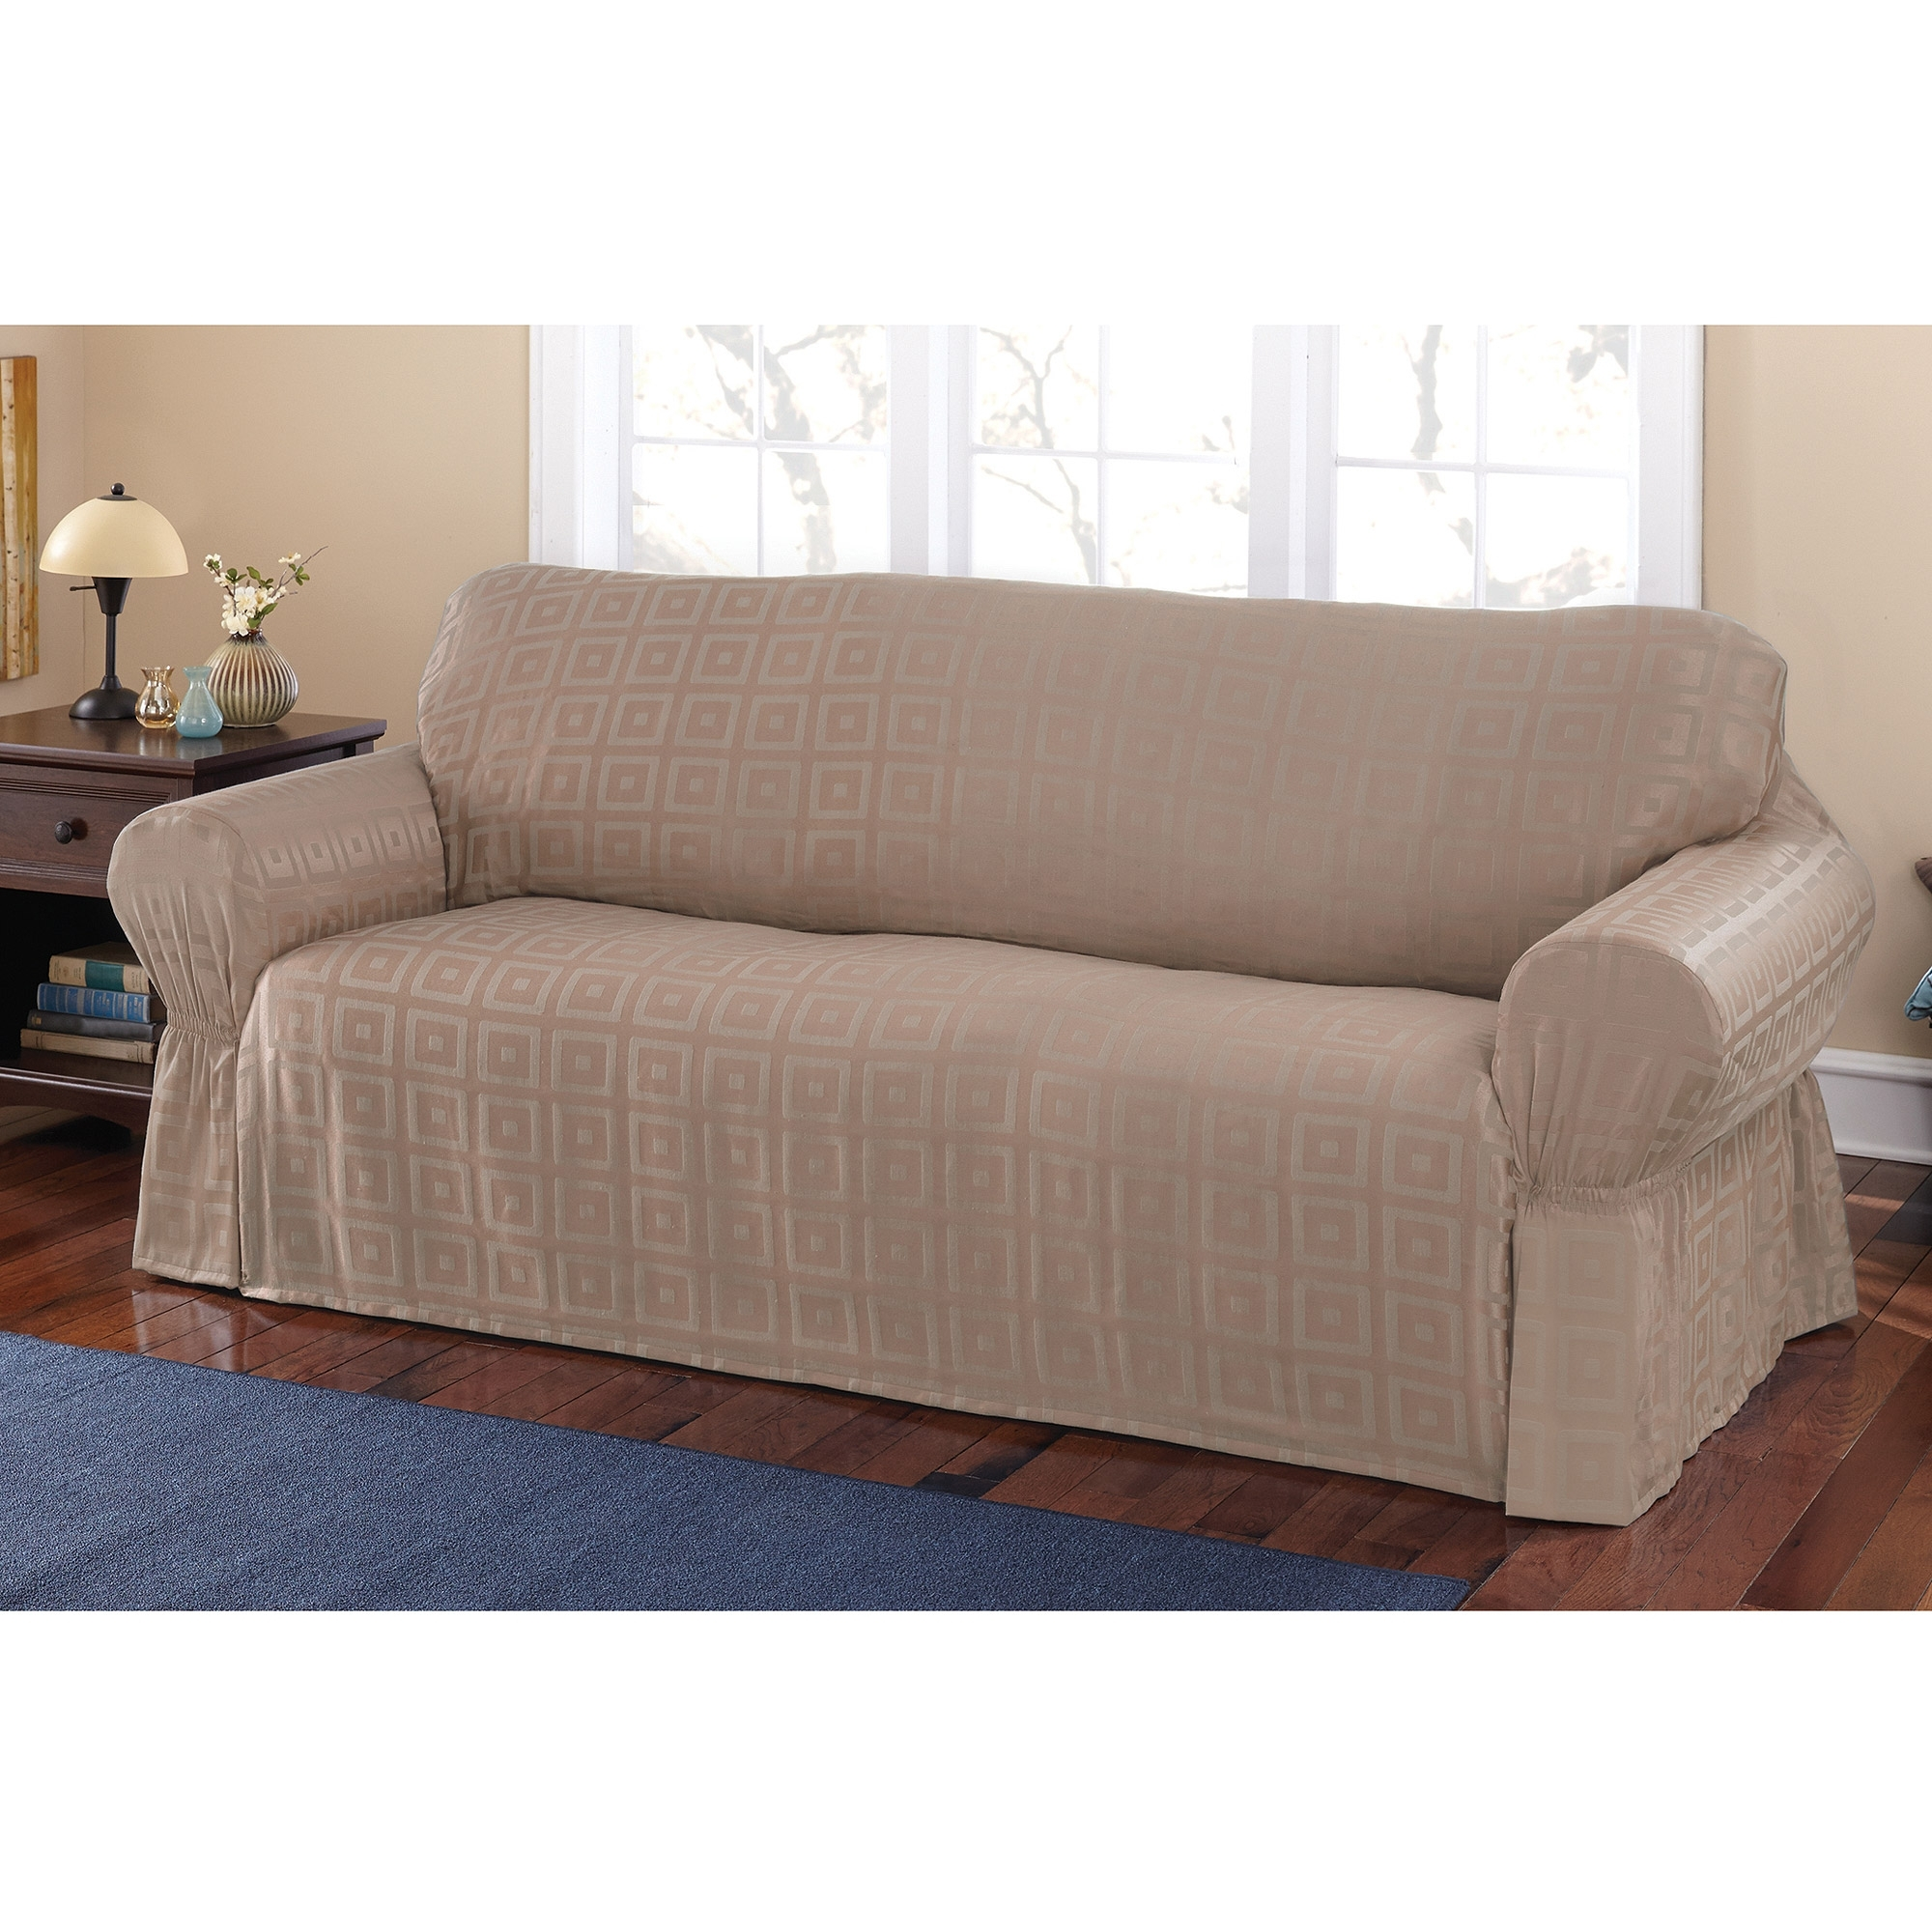 Mainstays Sherwood Slipcover Sofa – Walmart With Regard To Famous Sectional Sofas At Walmart (View 15 of 15)